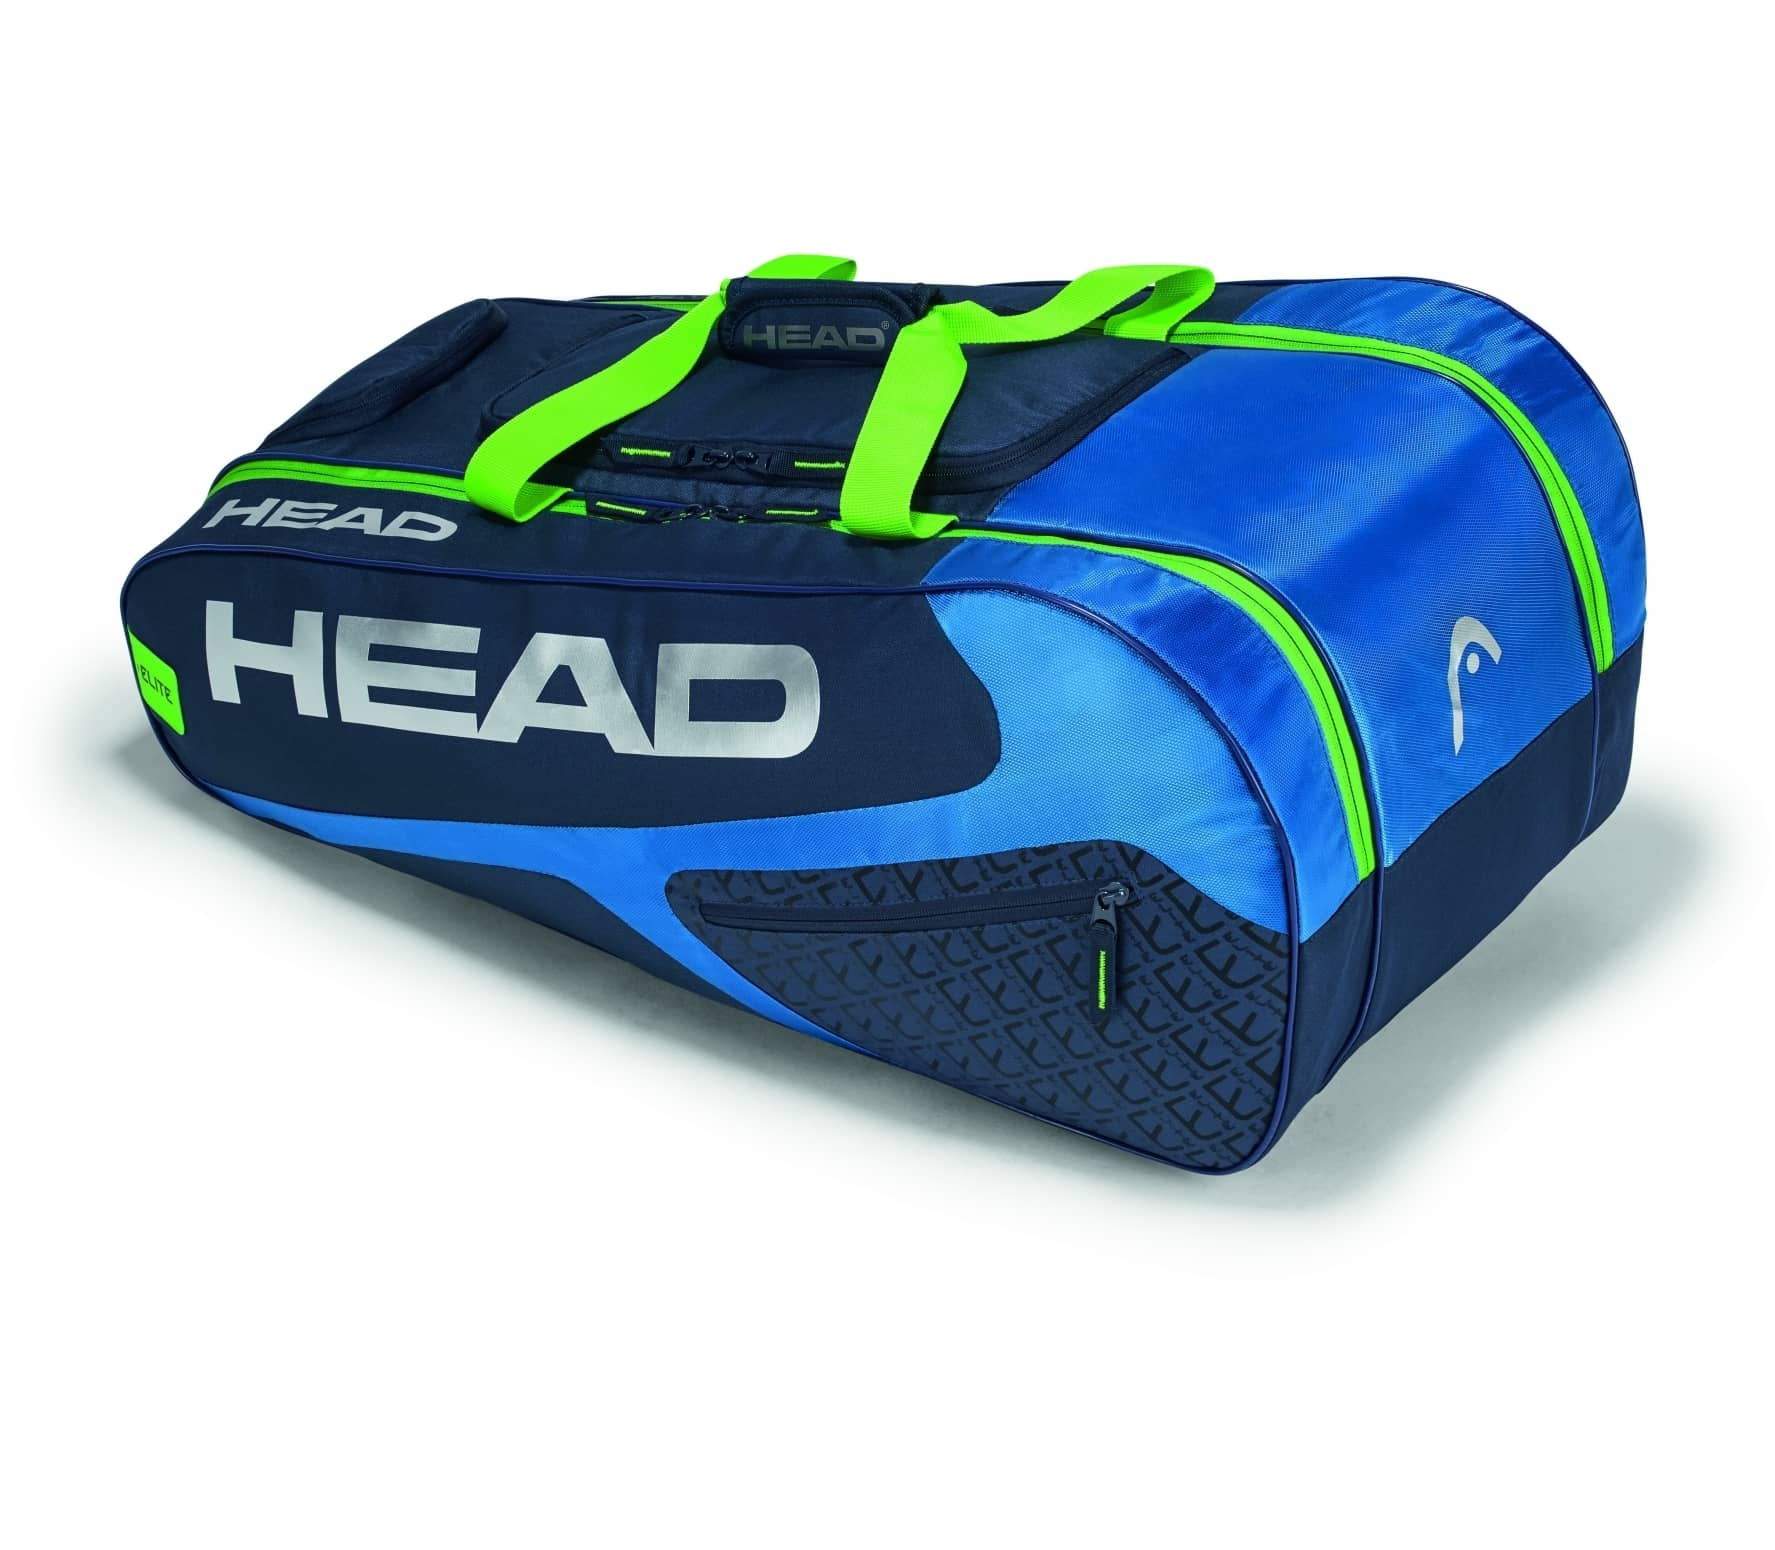 Head - Elite All Court tennis bag (blue/green)